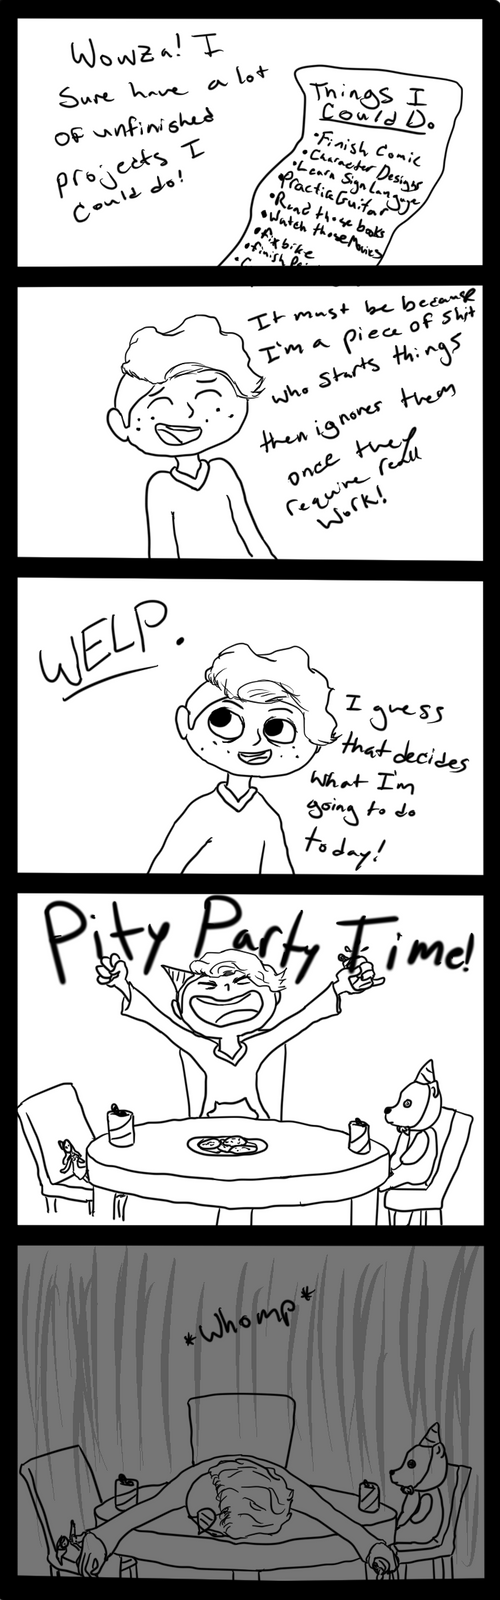 Pity Party by PsychoBabble192